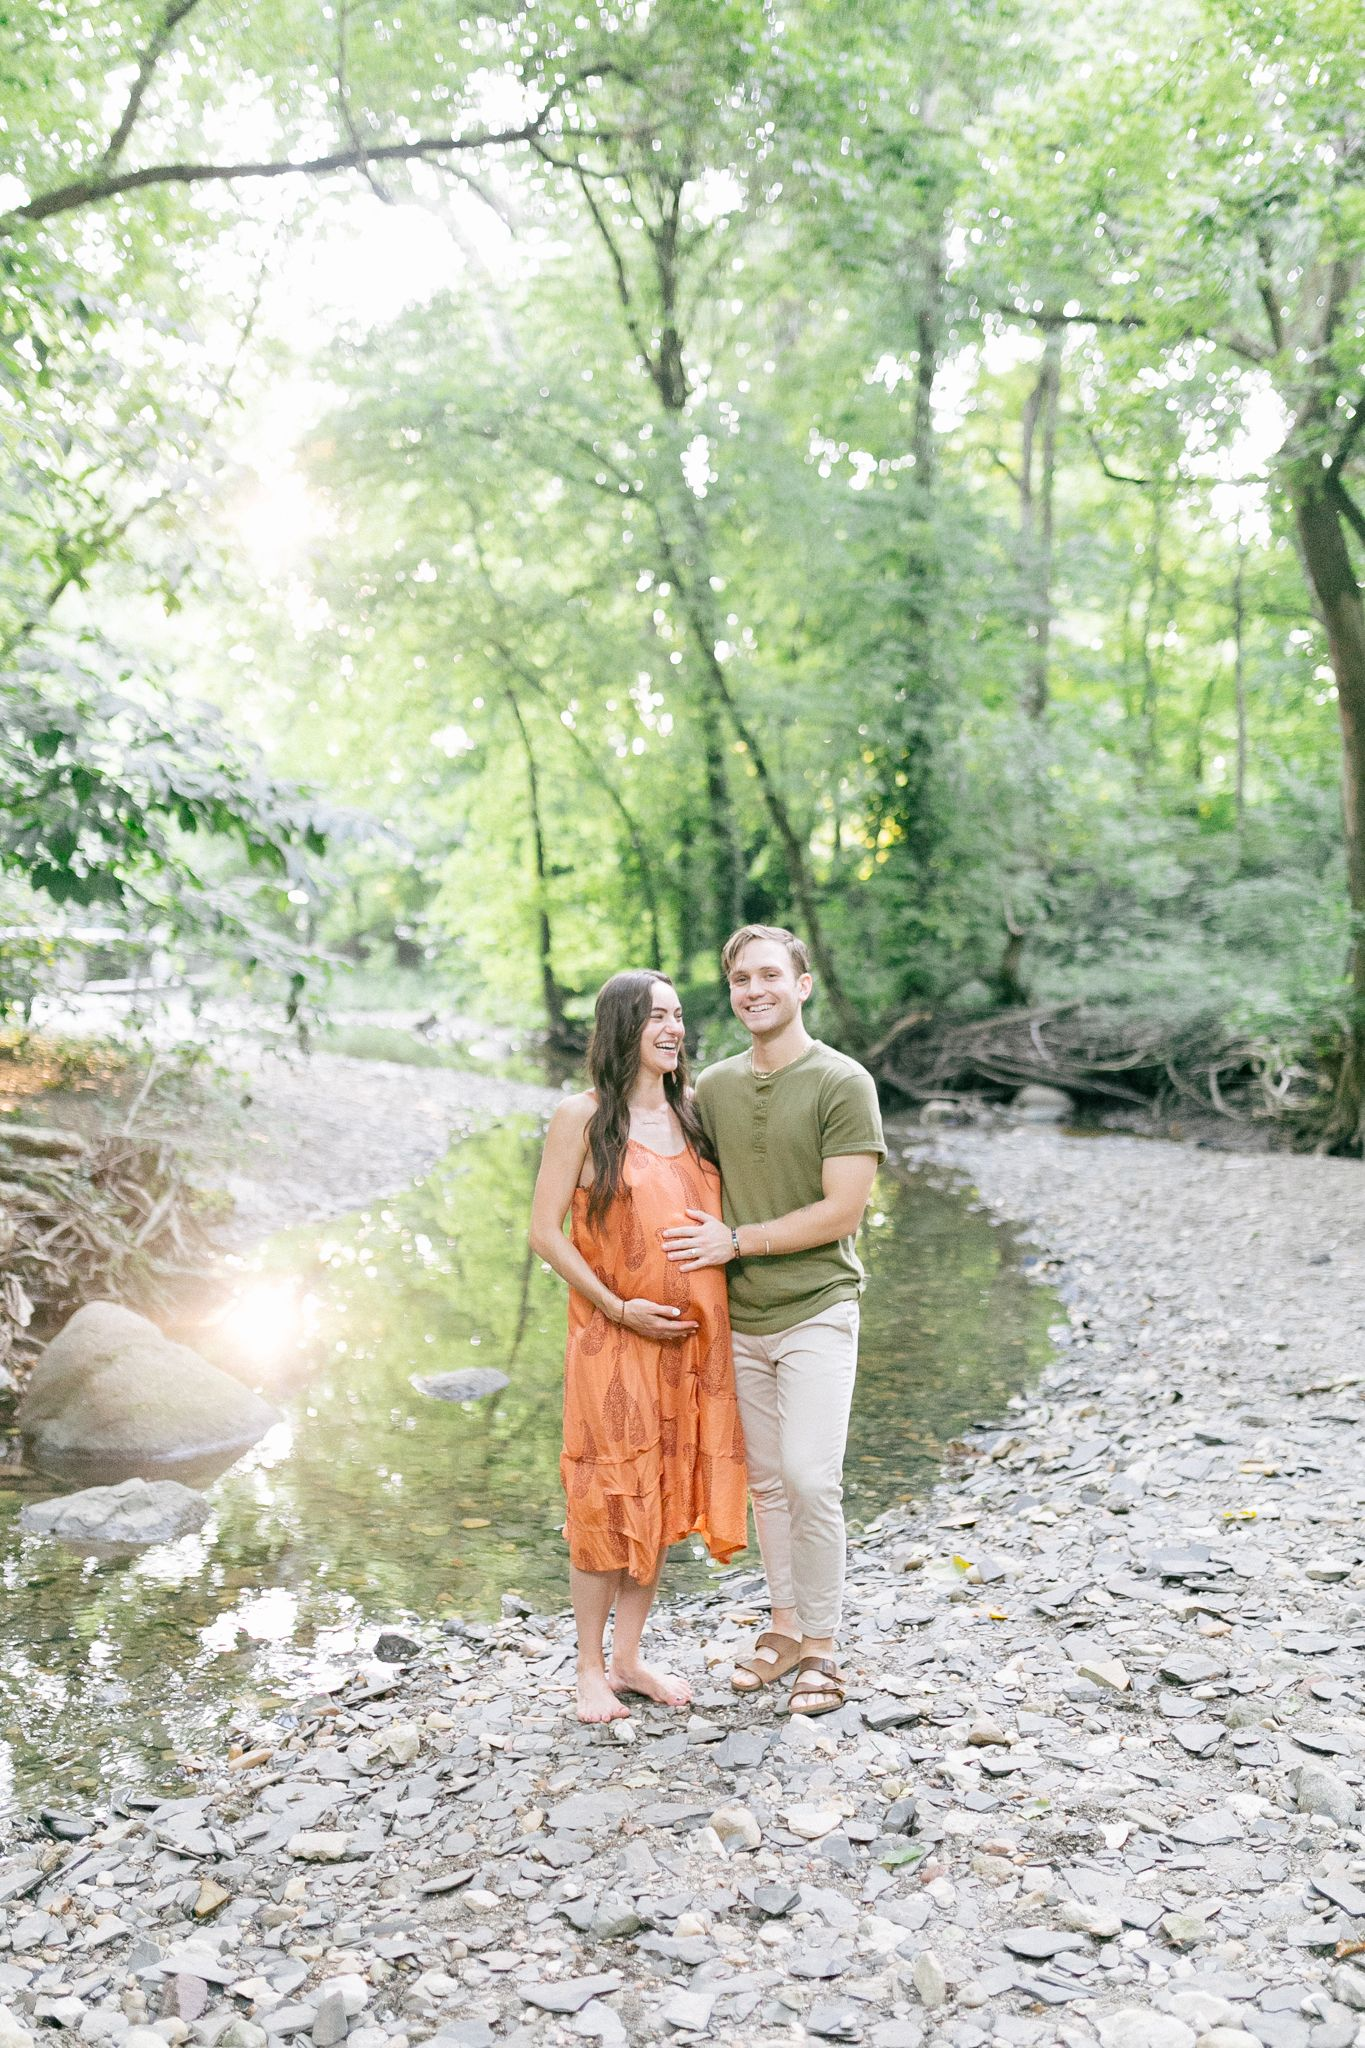 Maternity session in clintonville oh whetstone park of